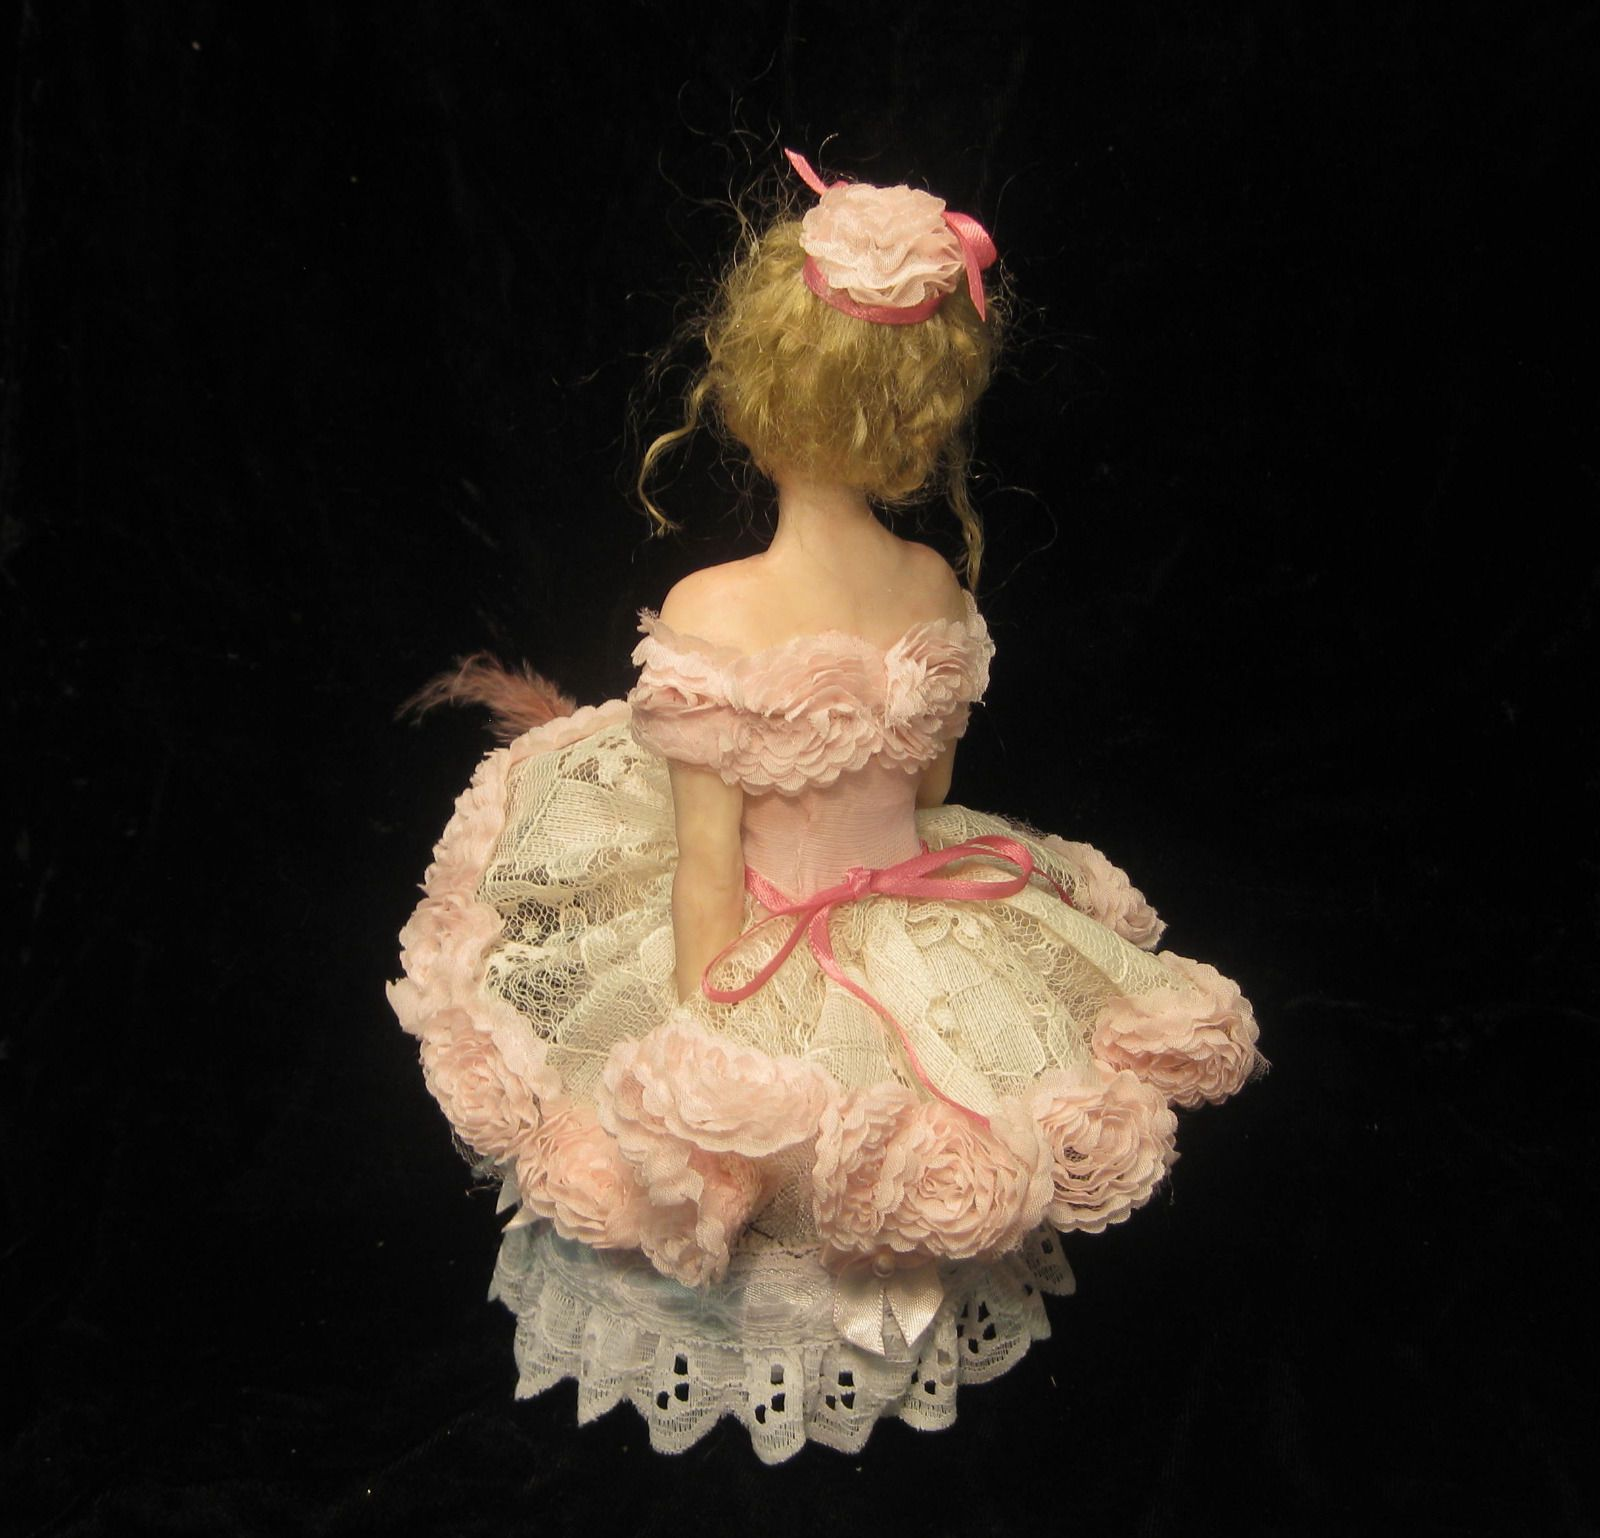 "One of a kind polymer clay Art doll.""Little Dancer'"" by artist Cheryl Fornengo"